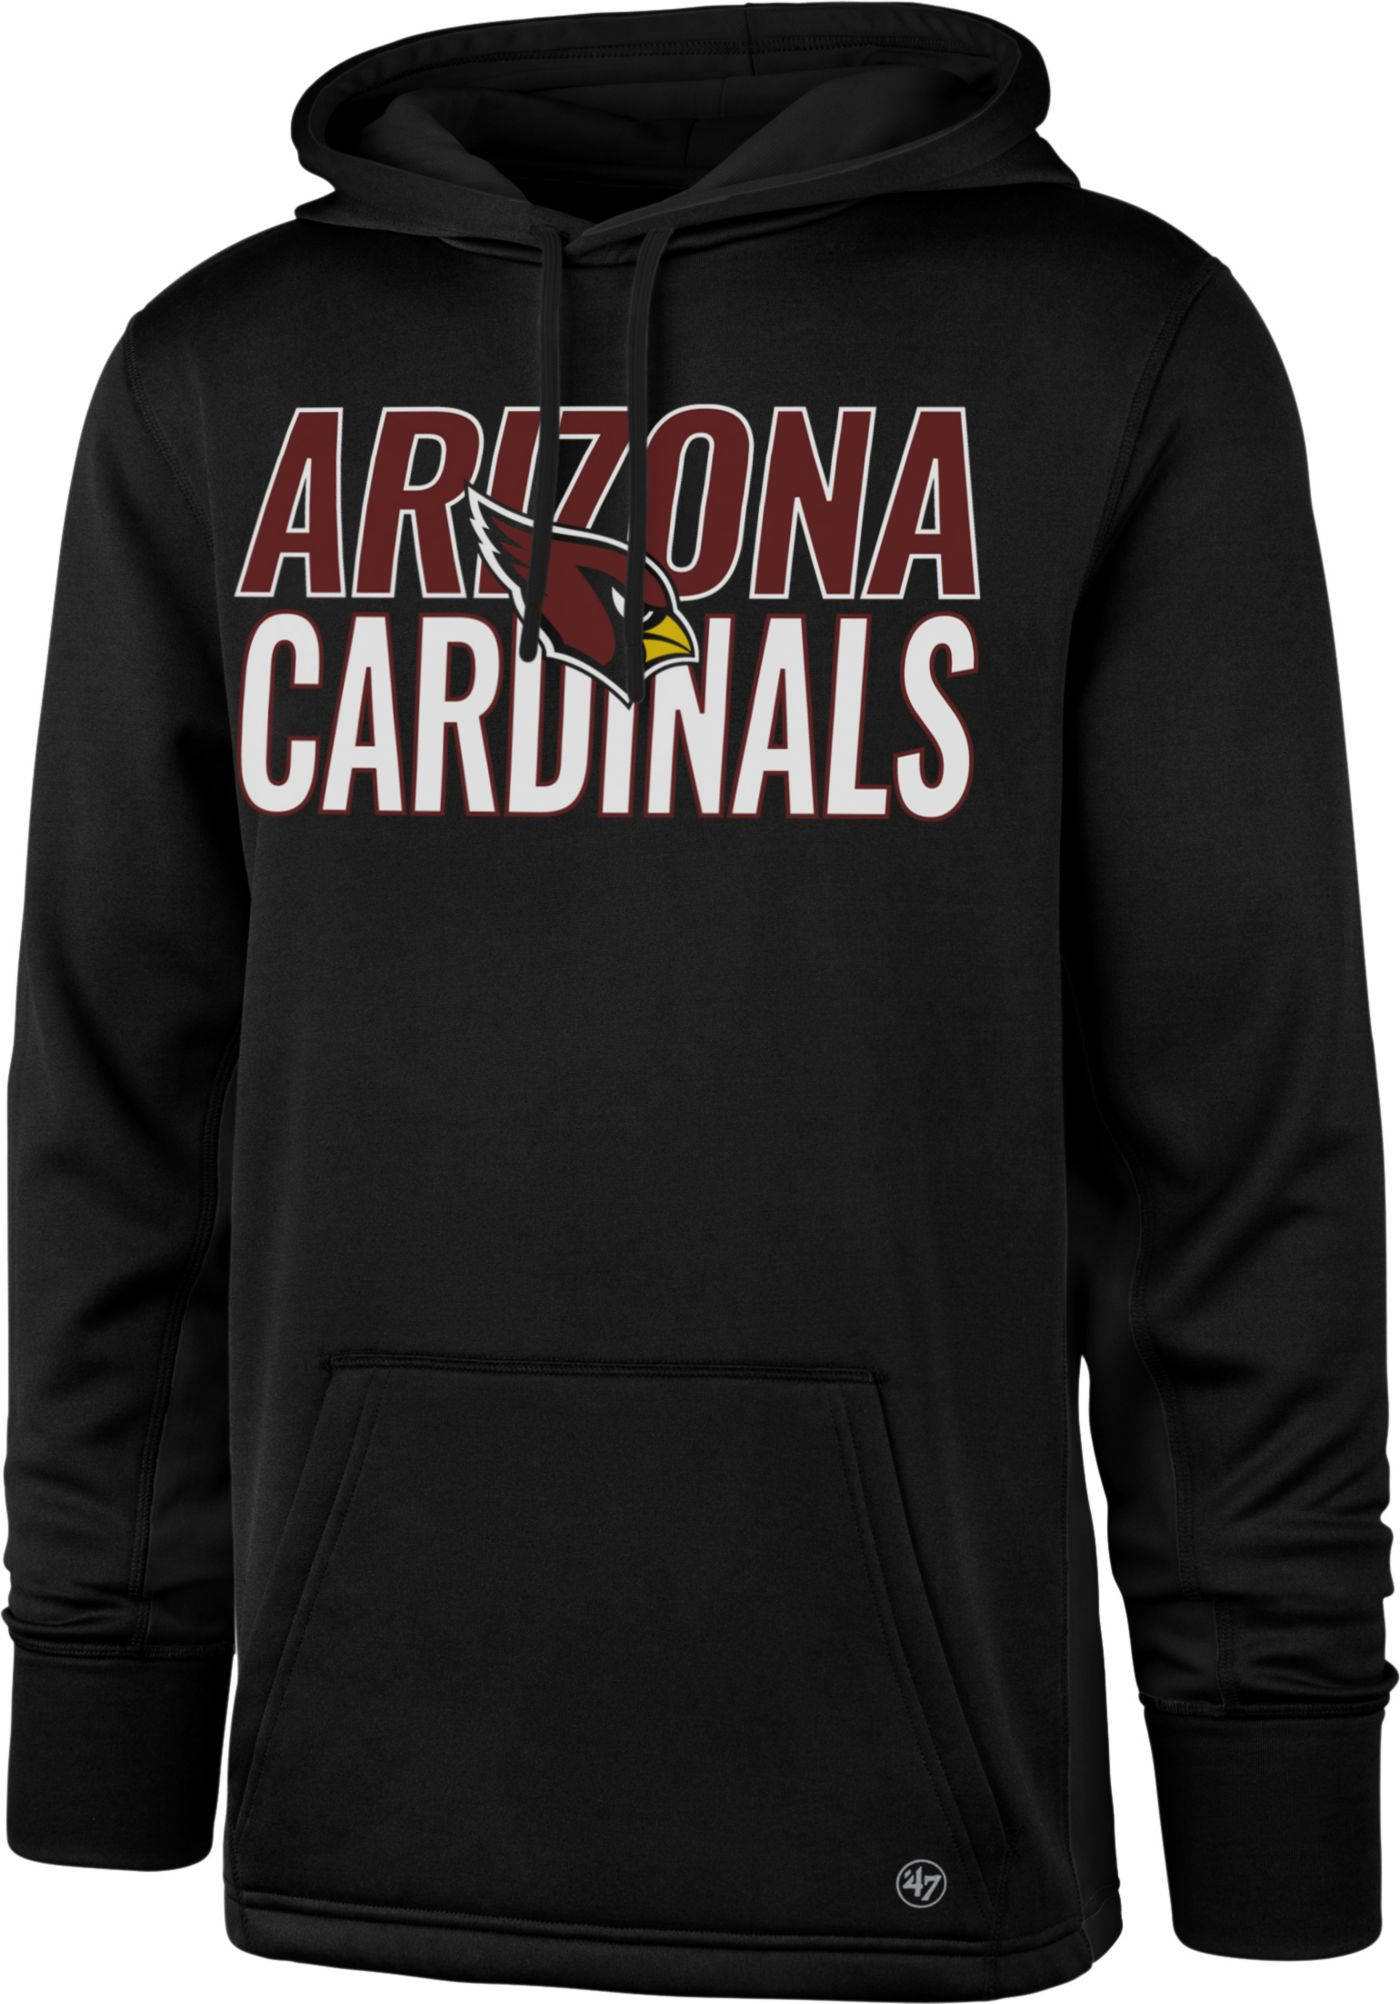 '47 Men's Arizona Cardinals Tech Fleece Black Performance Hoodie